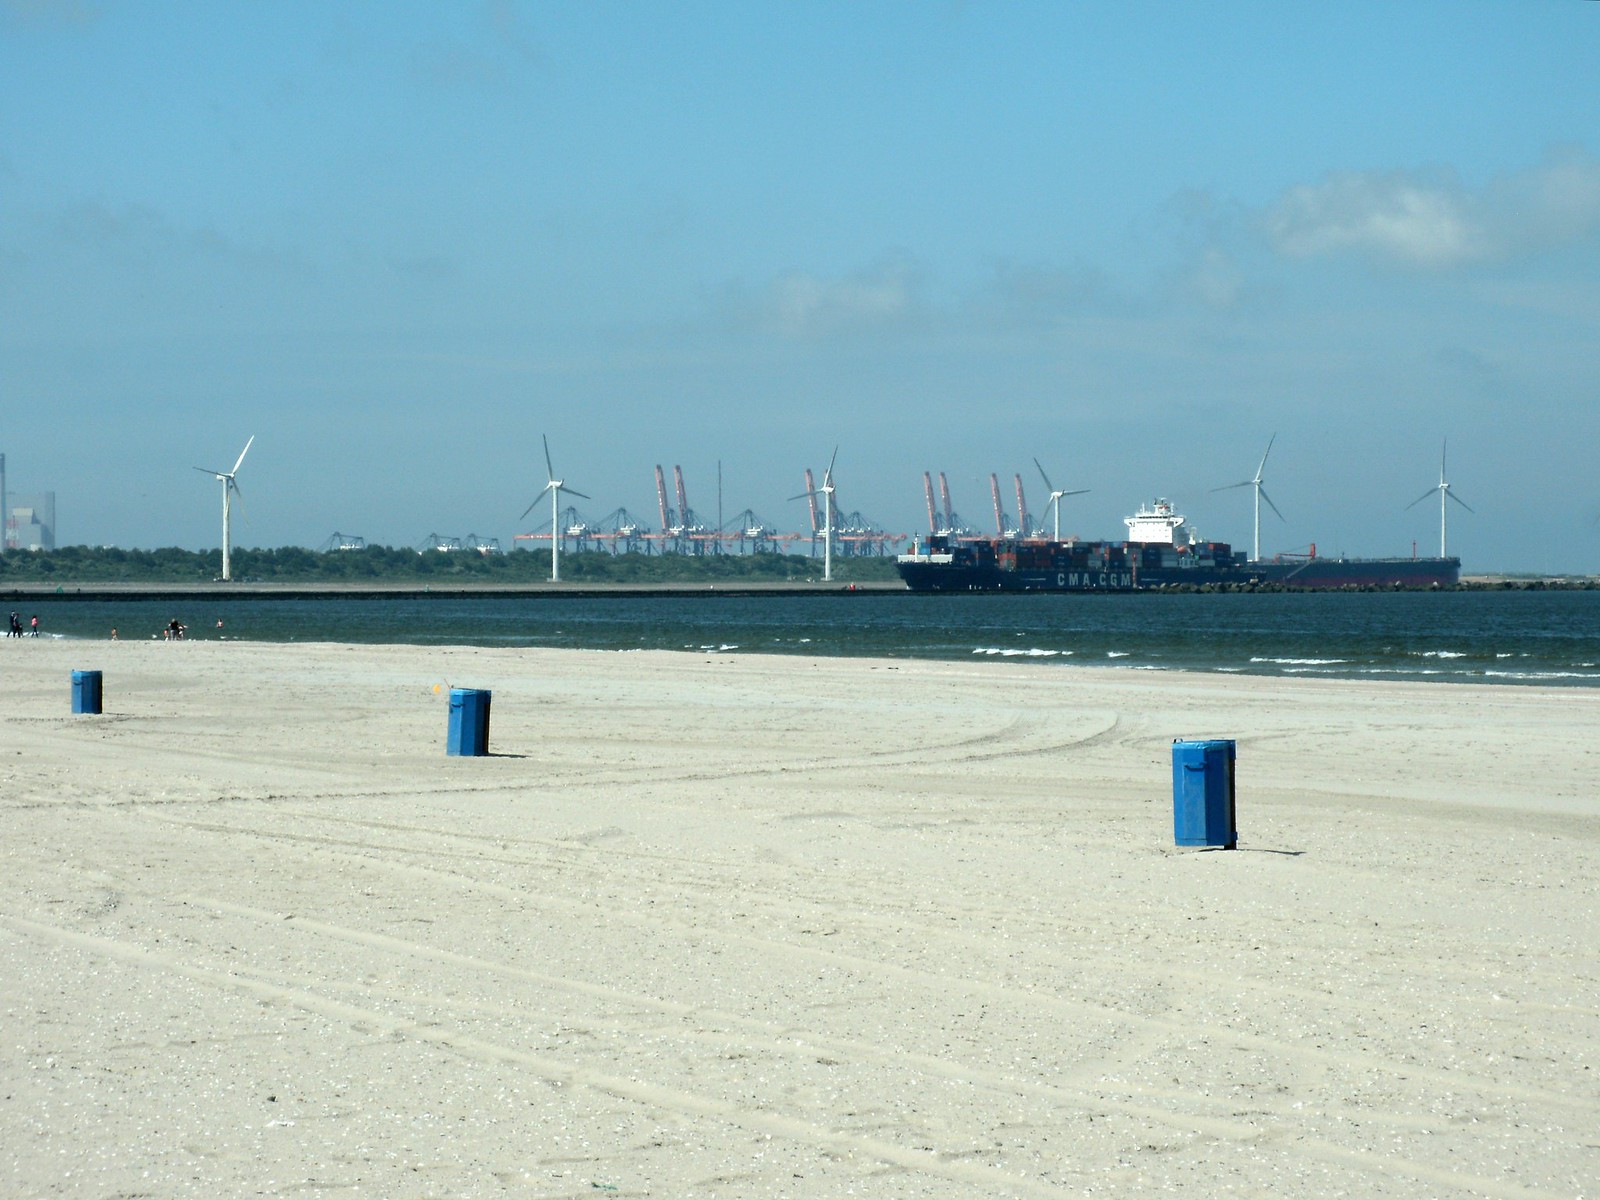 A large ship is approaching the harbor in the distance.